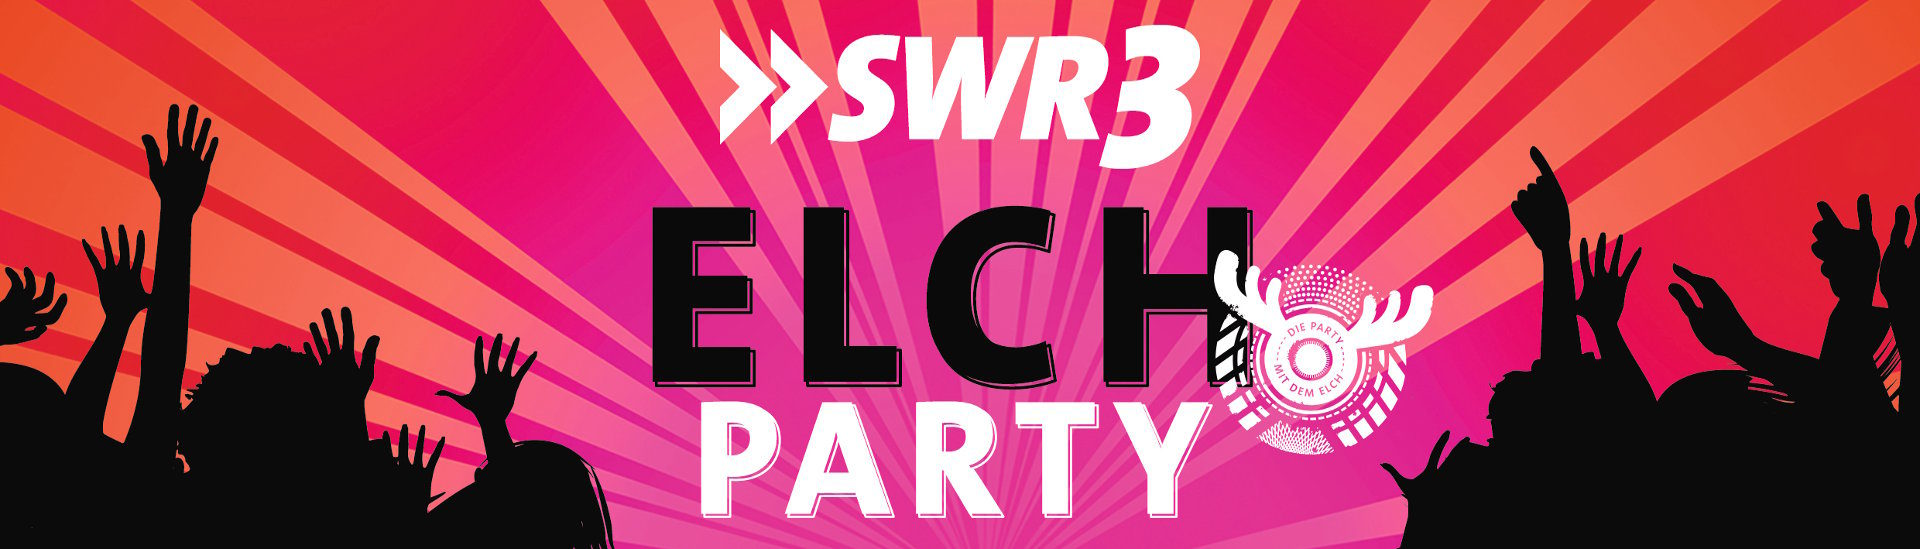 Logo ElchParty mit Partypeoples